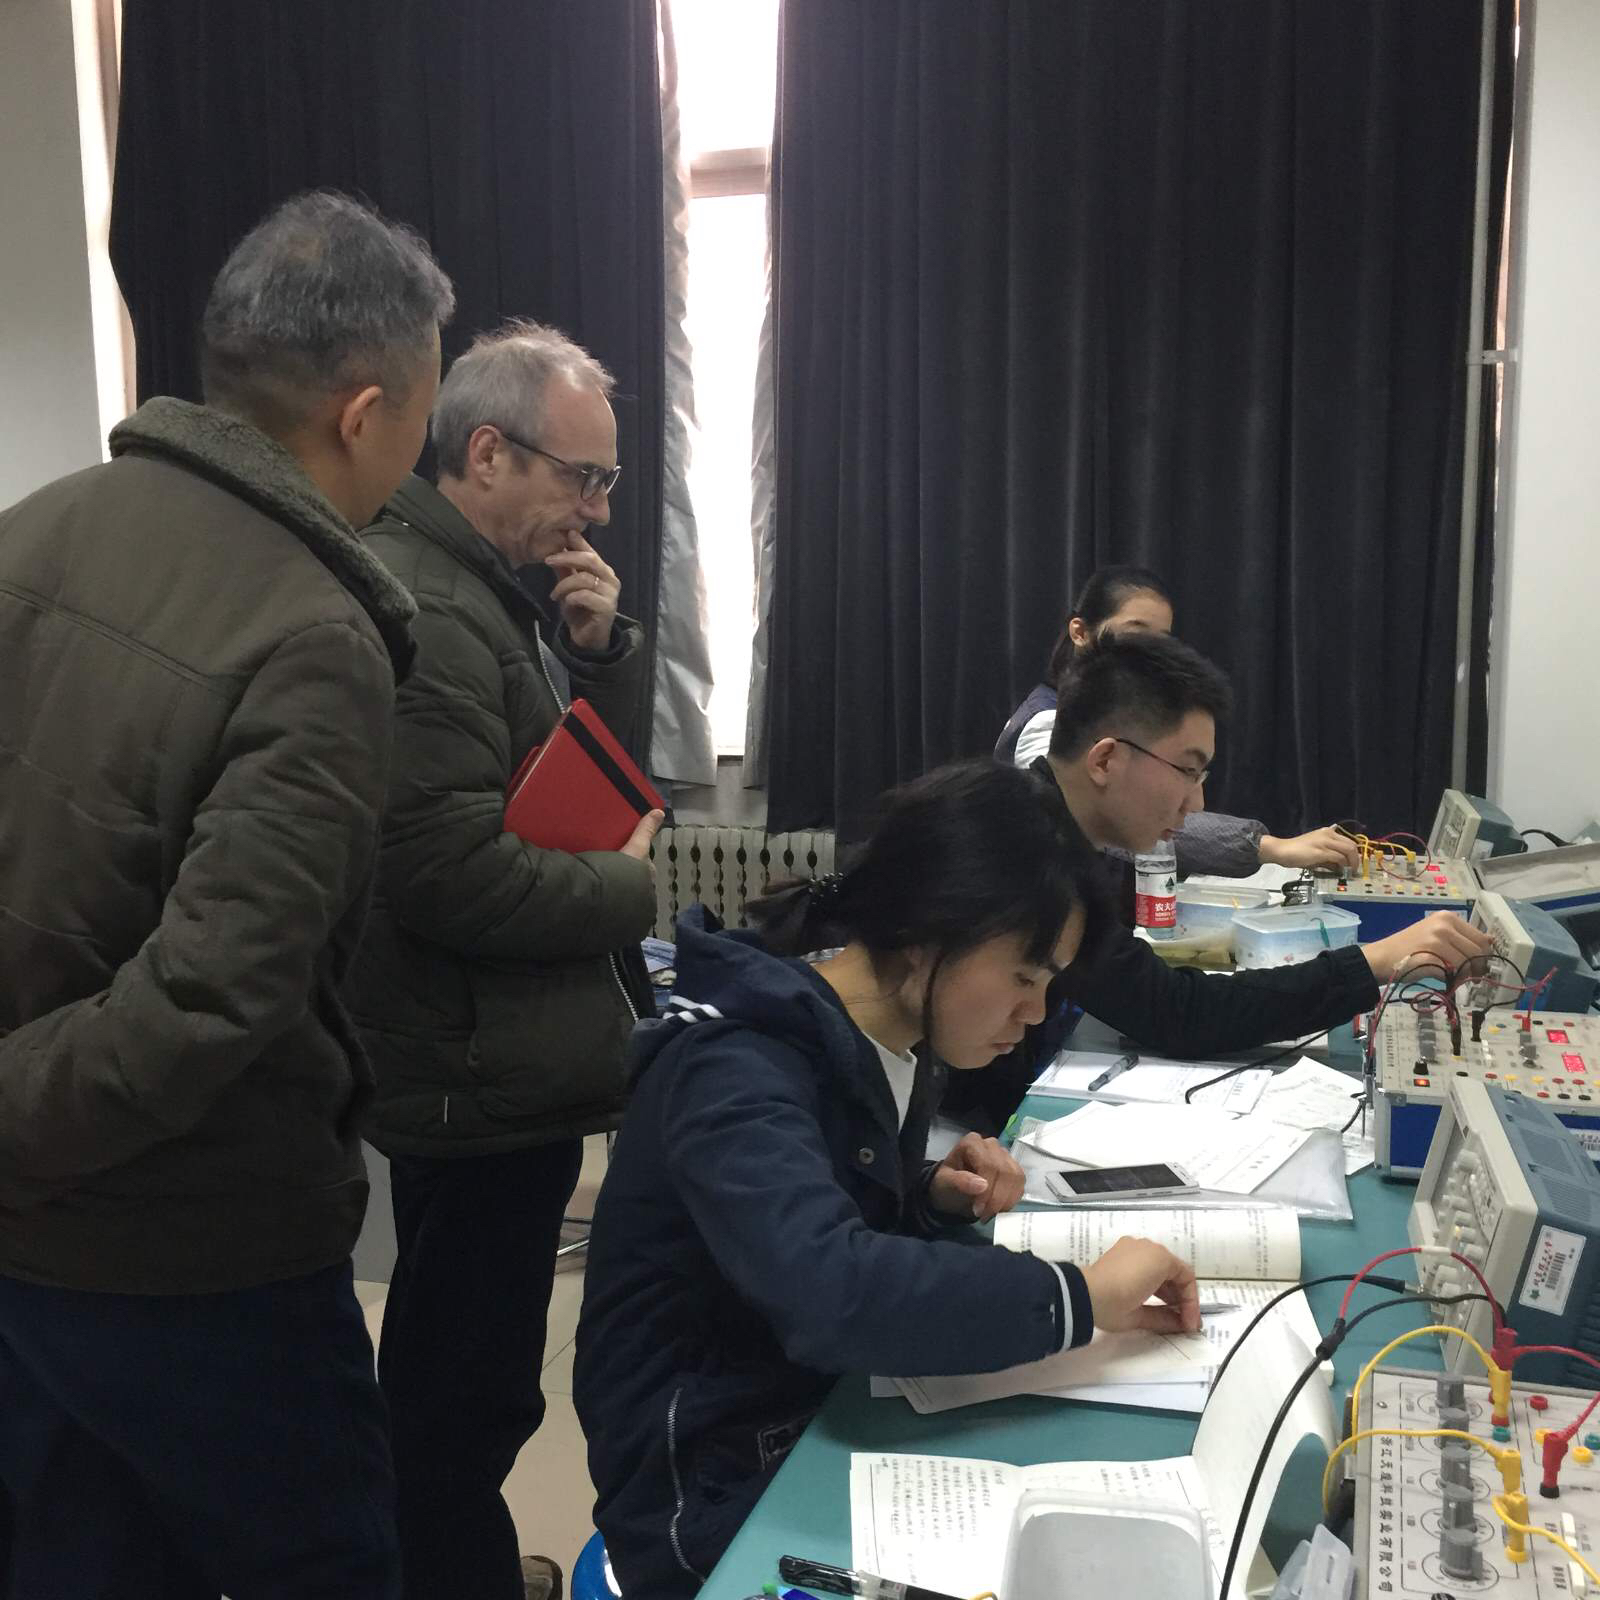 Evaluation of a current first year physics practical for engineering students at Beijing Institute of Technology.